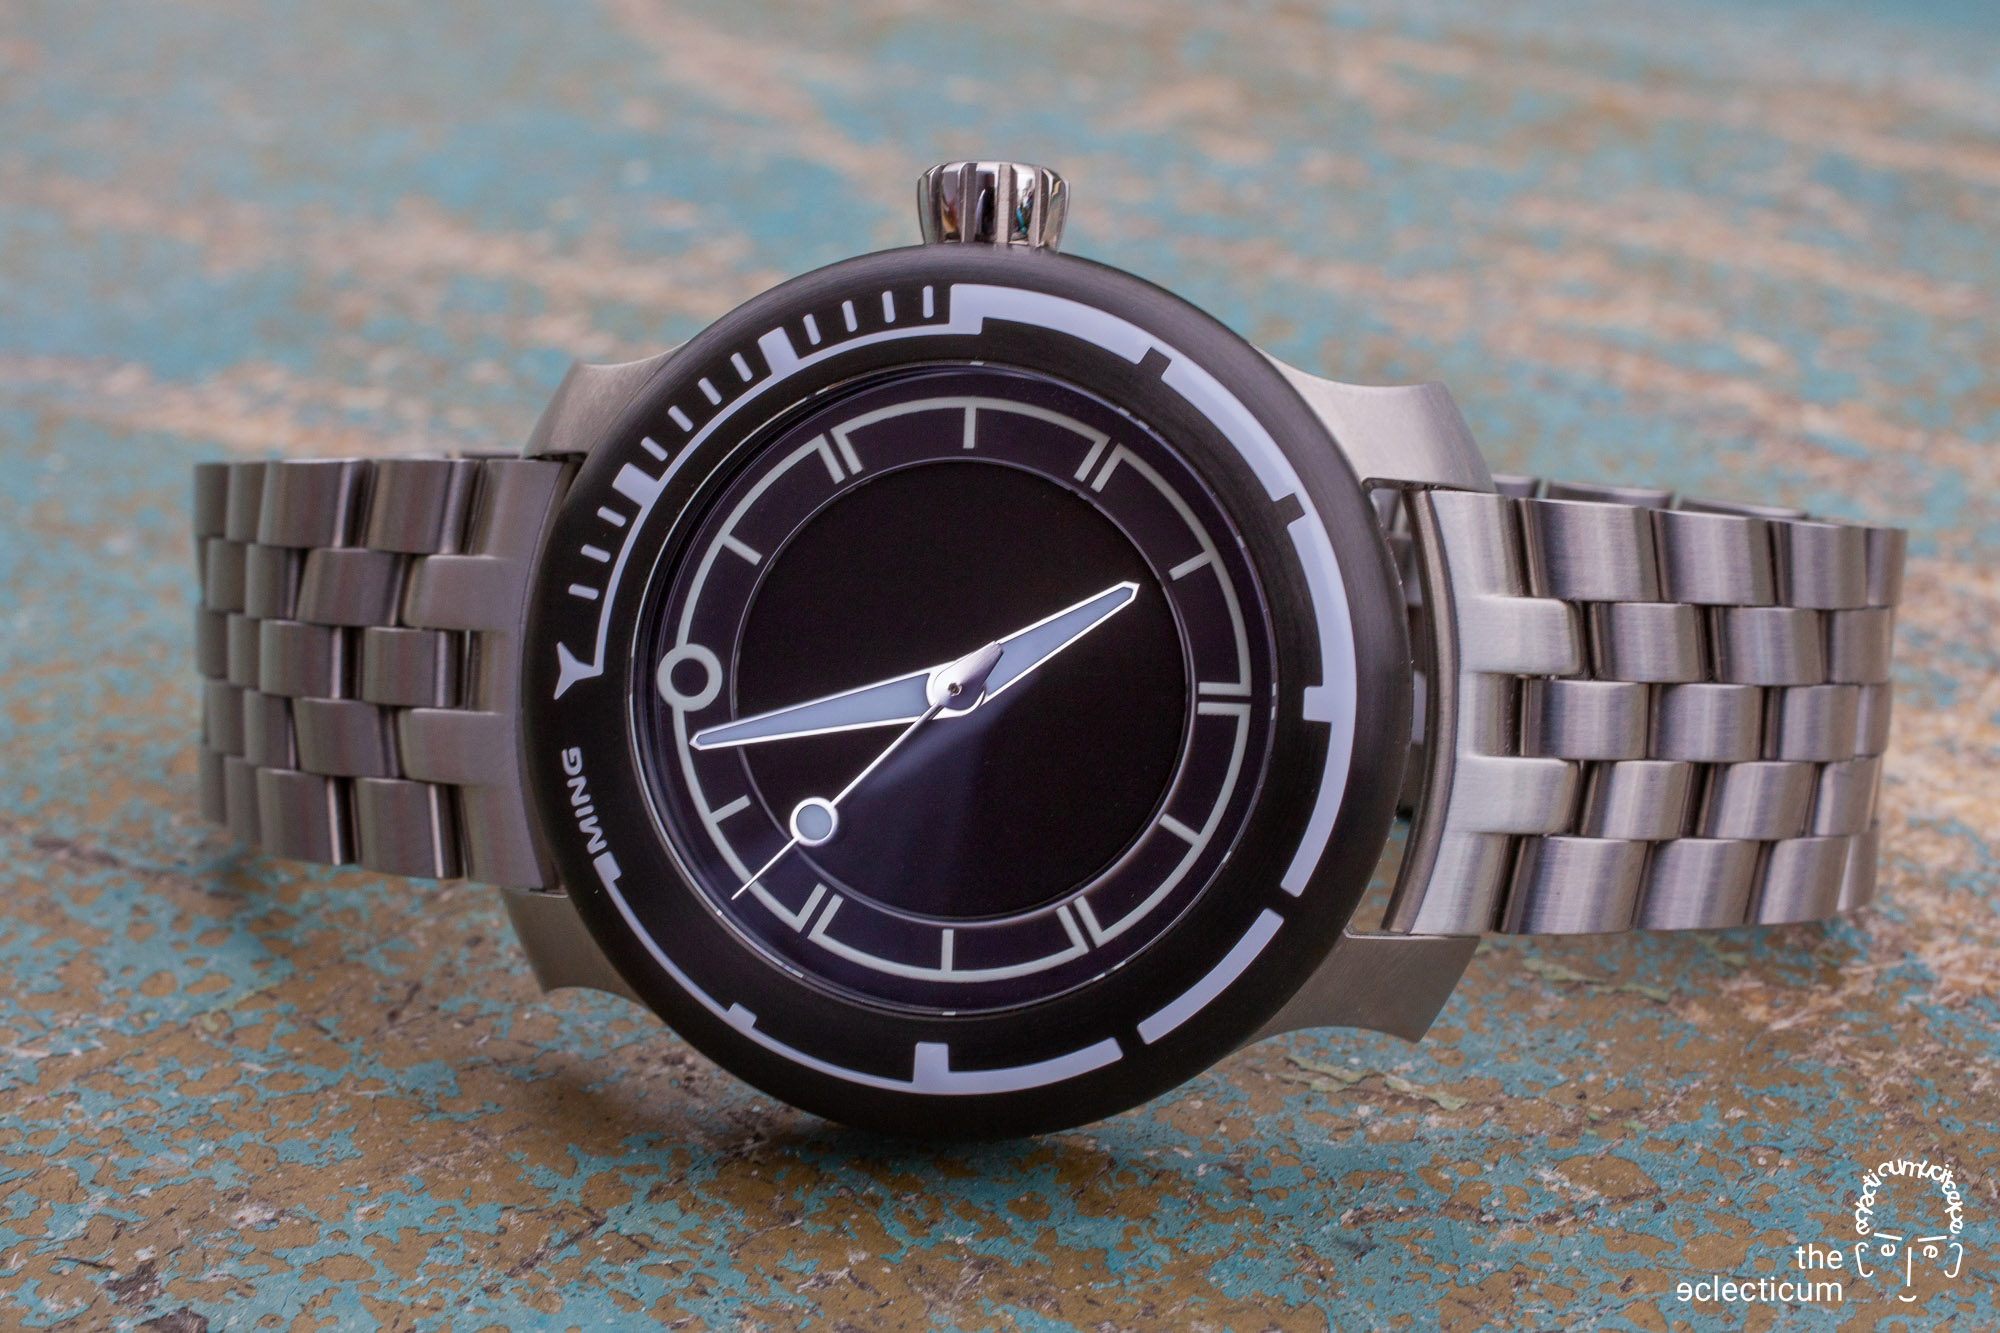 Hands-on: a comprehensive collector´s view on the MING 18.01 H41 and its (universal) bracelet. The latest diver watch to the MING family, a novelty from 2020.